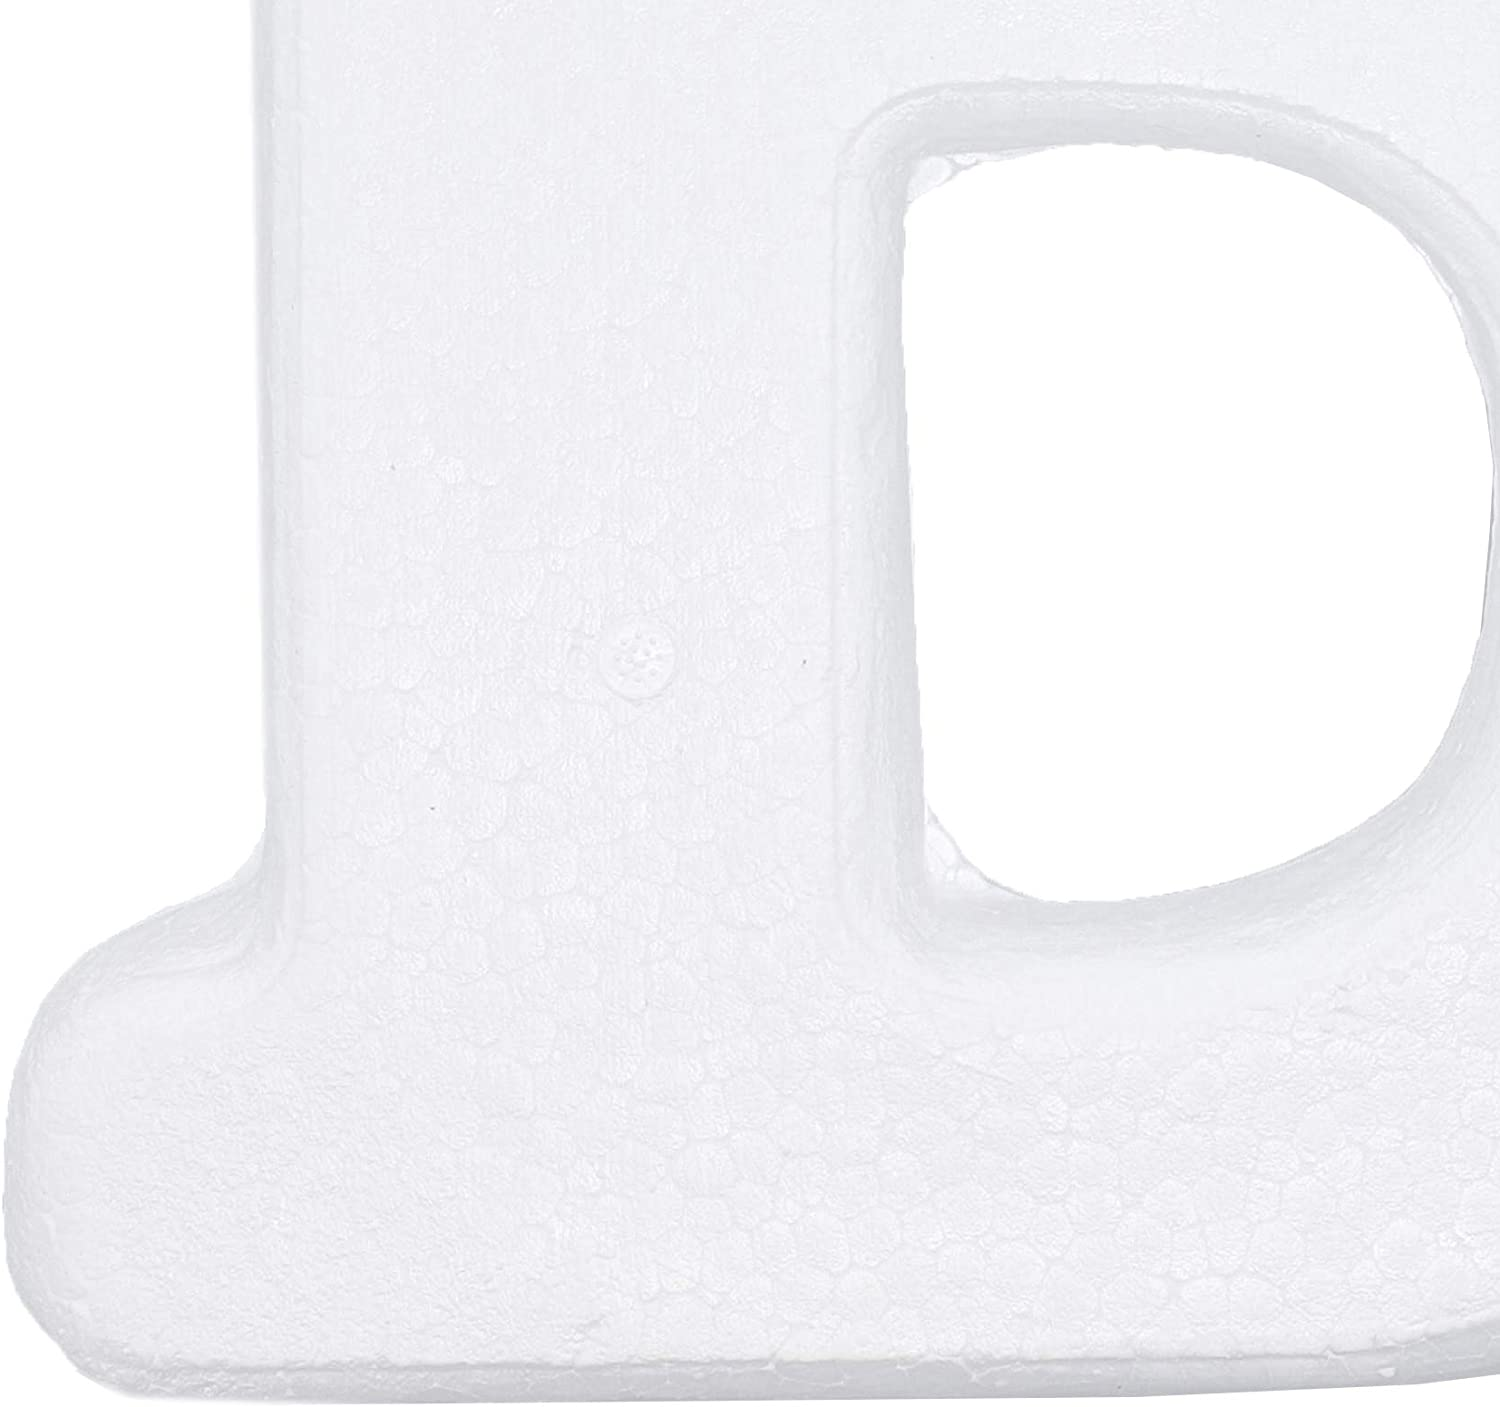 White 12 Inches Bright Creations Large Foam Number 0 for DIY Crafts